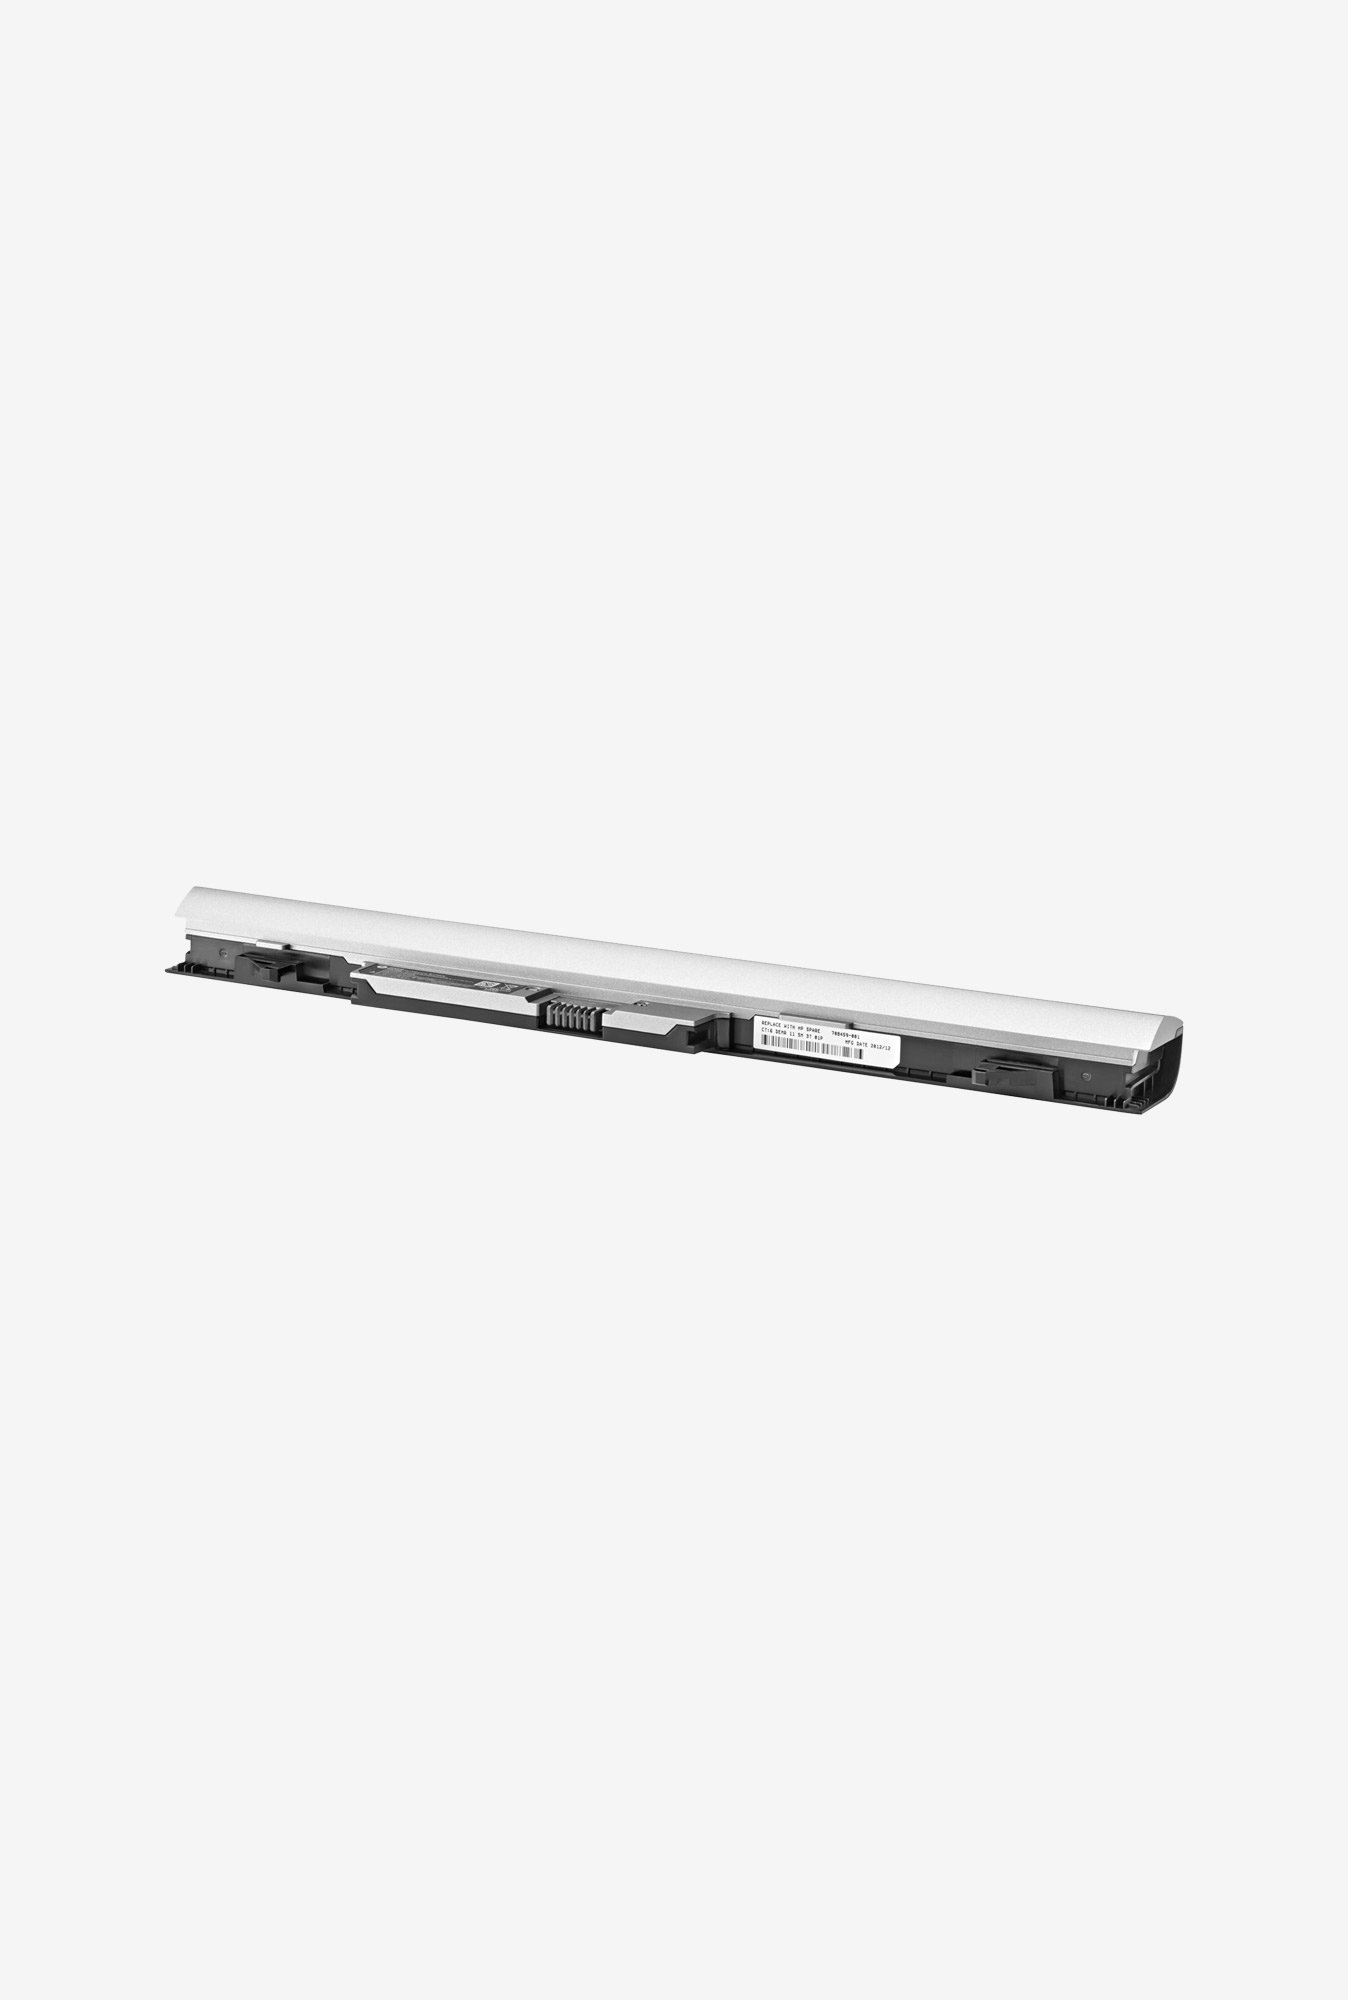 HP RA04 Notebook Battery White